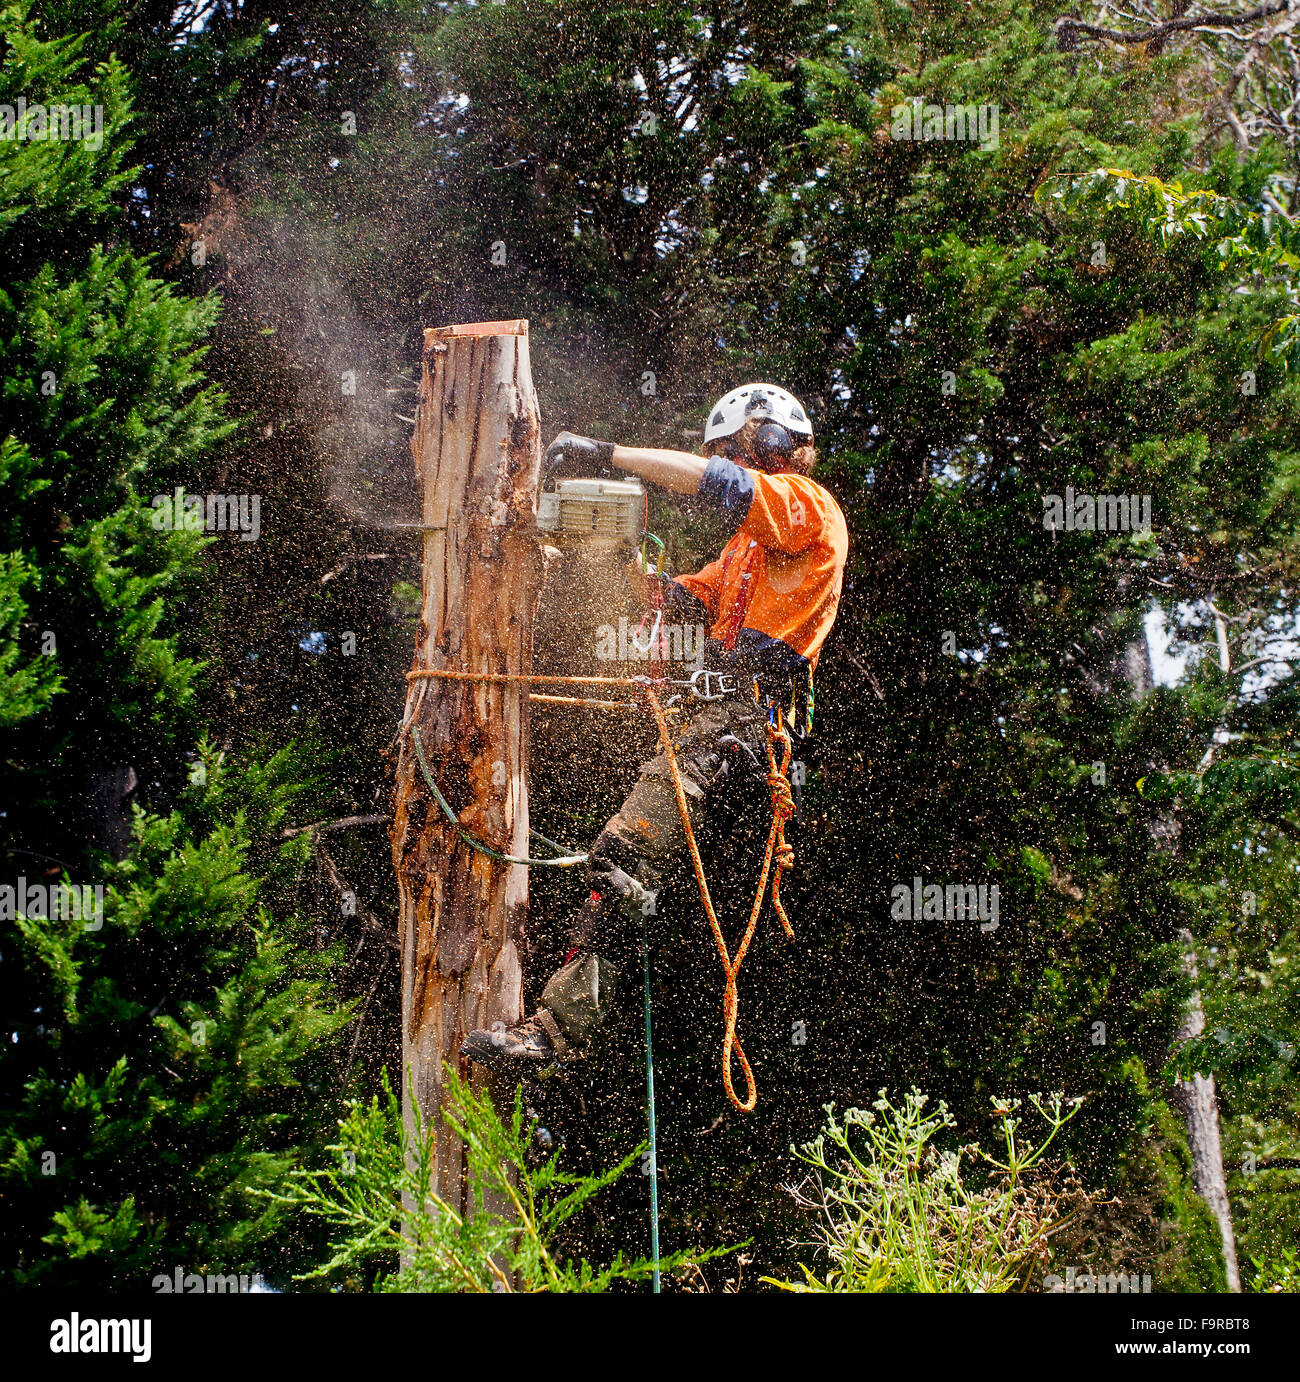 A forester  with harness and safety equipment, uses a power saw to remove a tree trunk at the Geelong Botanic Gardens - Stock Image